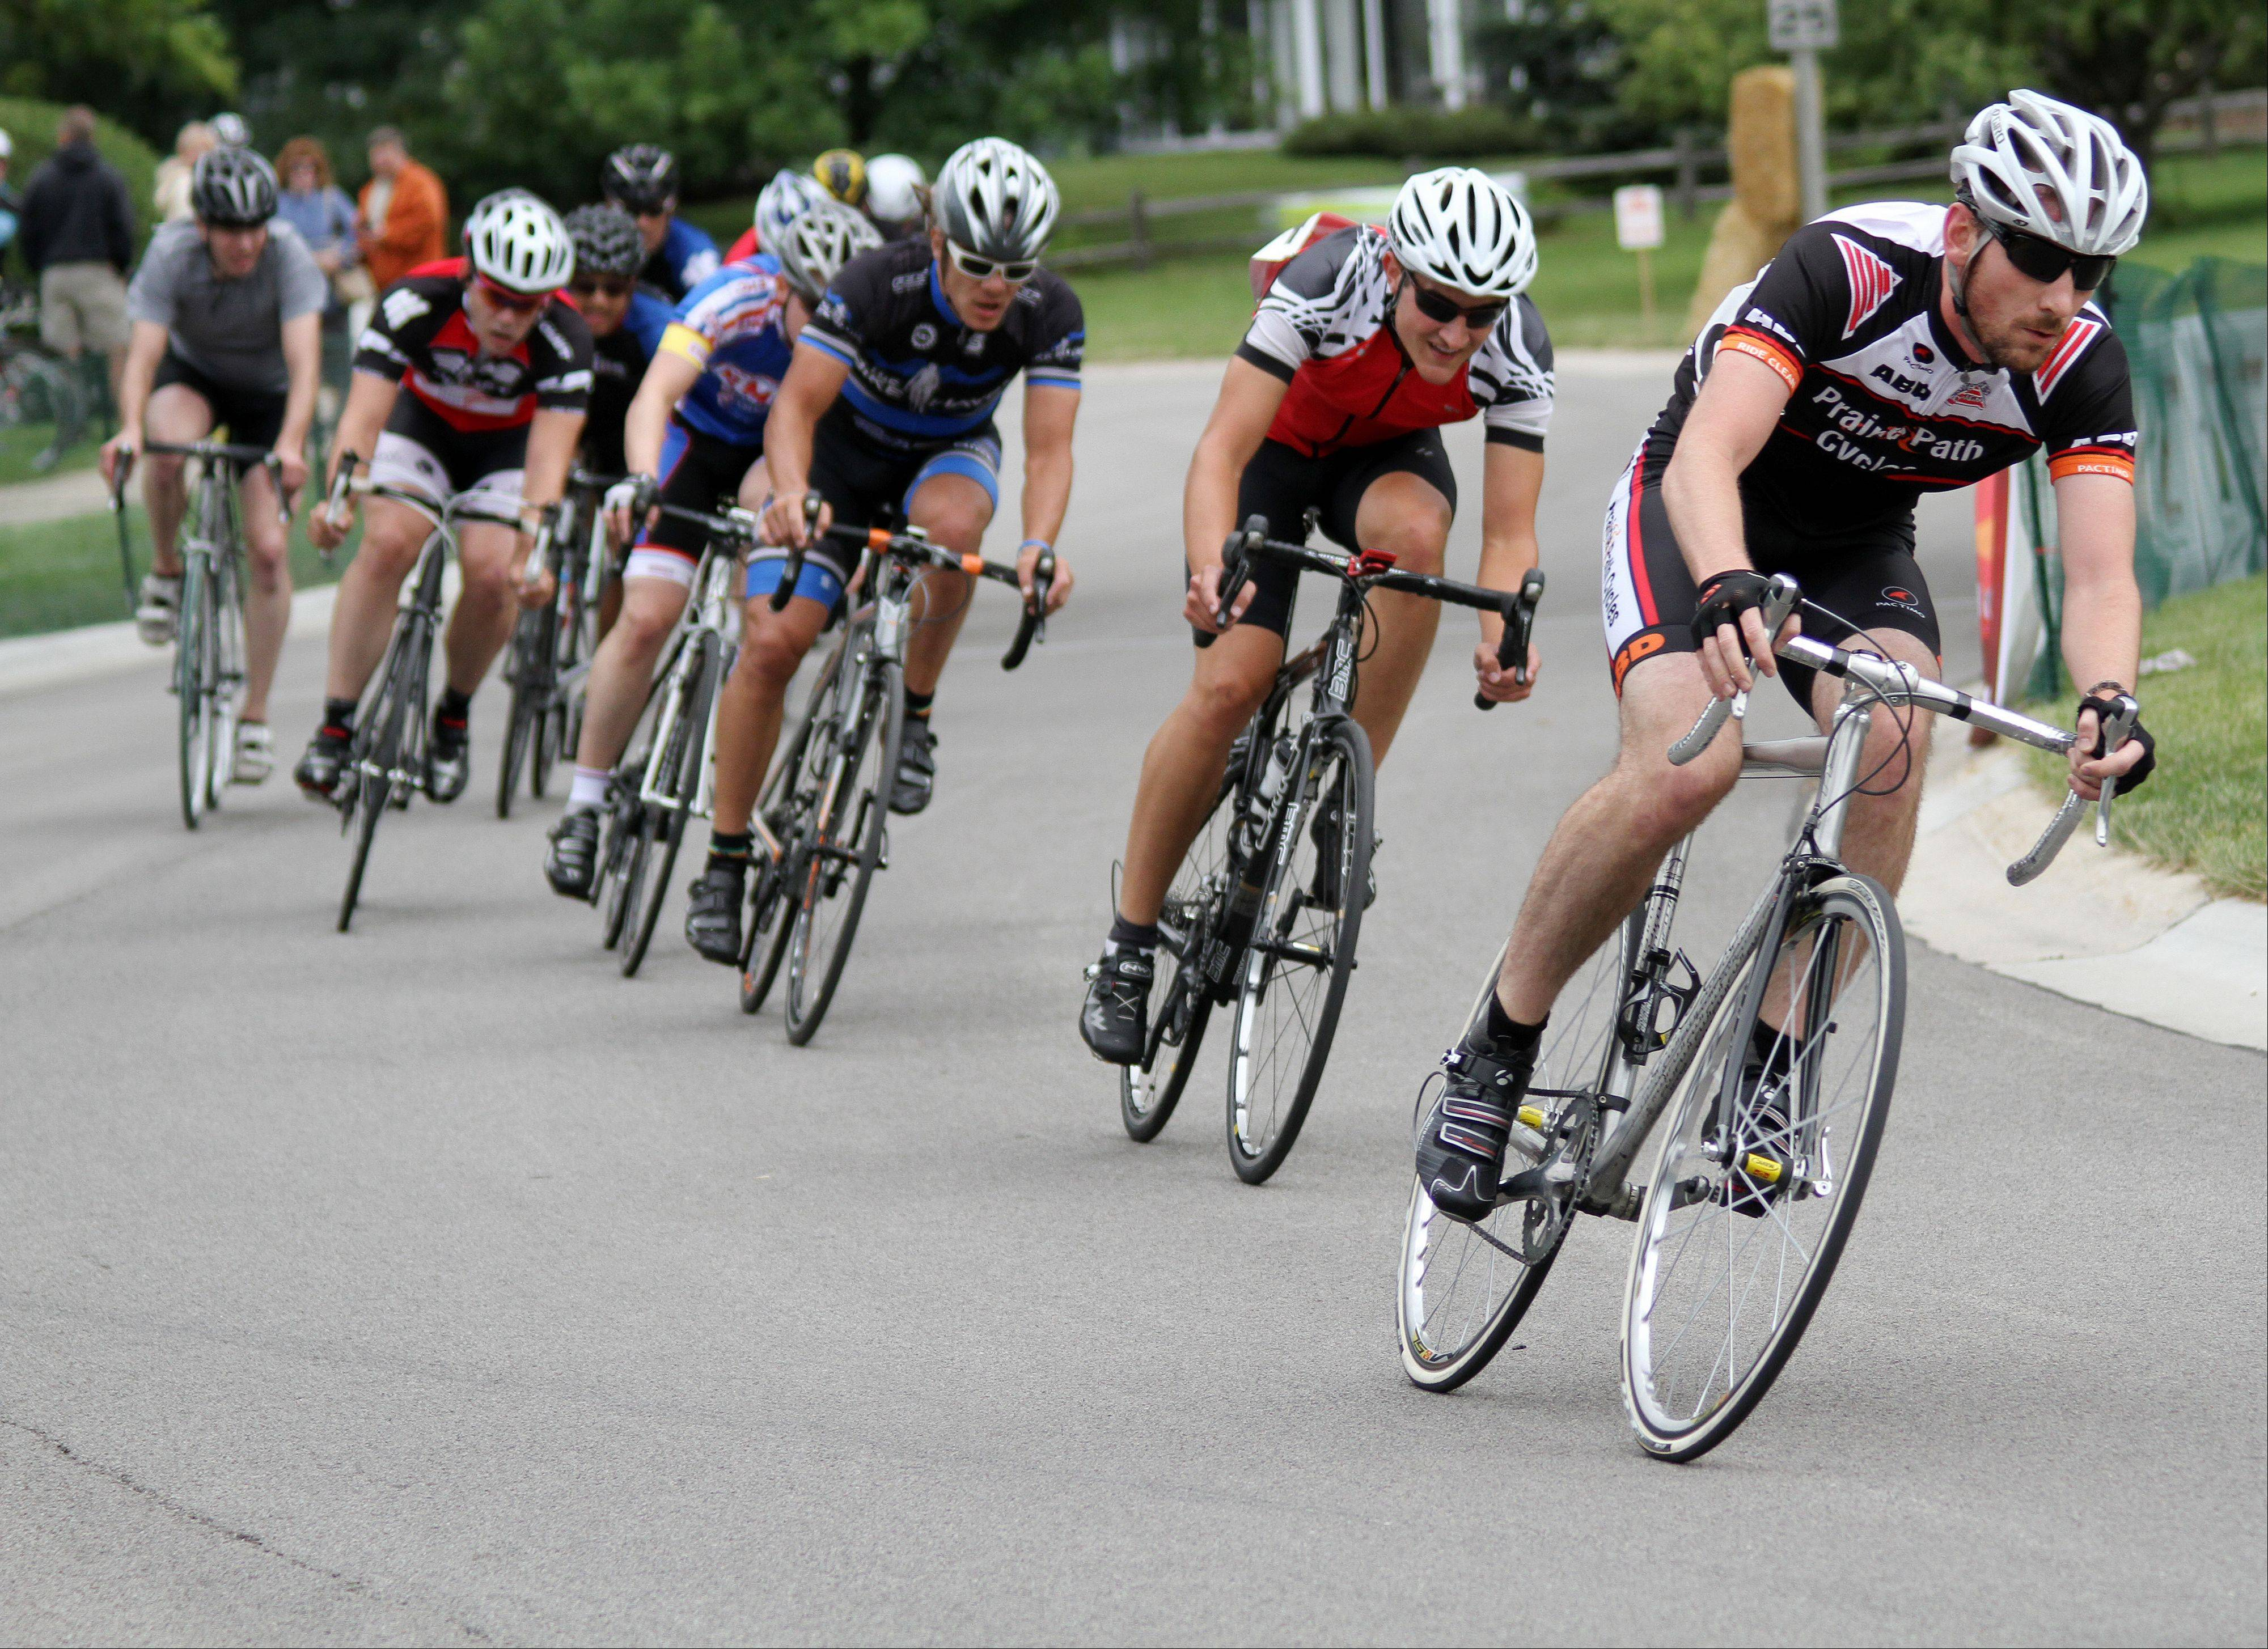 Riders in the Category 5 race round a corner Sunday at the 2013 Winfield Criterium at Oakwood Park. More than 300 races competed in races at the annual event this year.